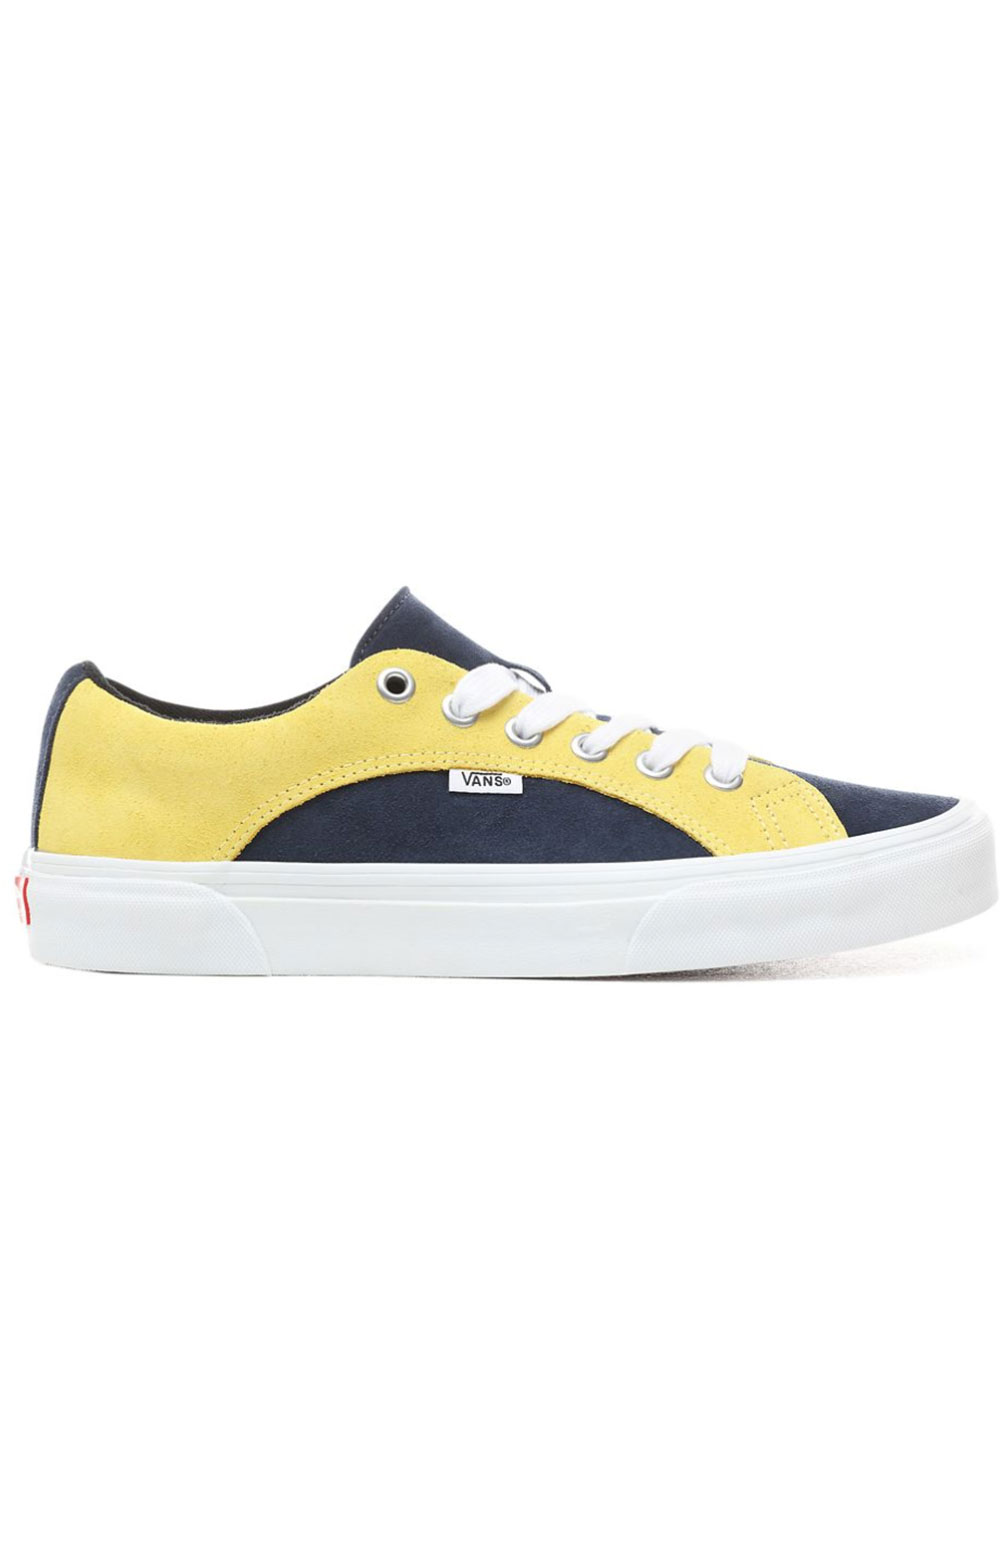 (8FIVQ8) Retro Skate Lampin Shoe - Dress Blue Yellow